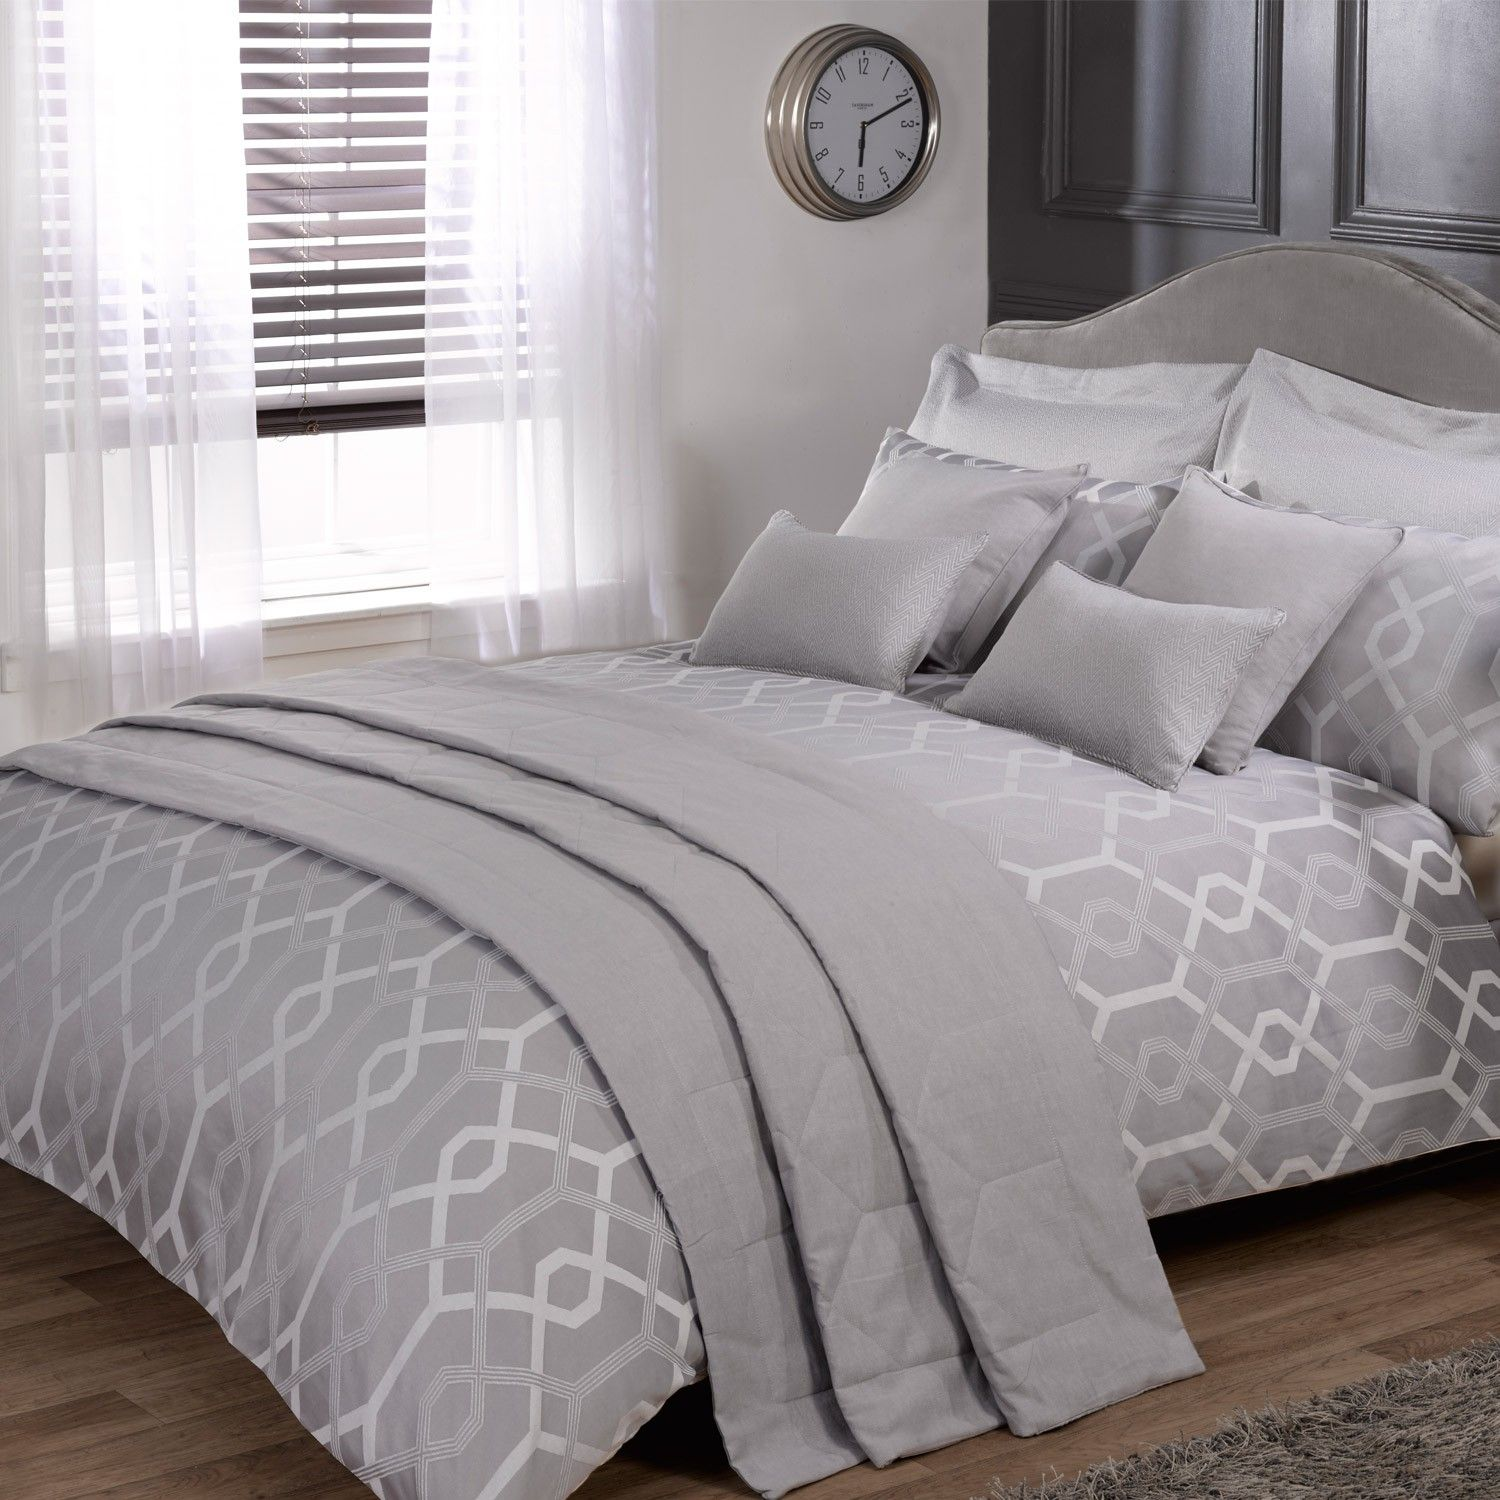 Harrison Silver Luxury Jacquard Duvet Cover Julian